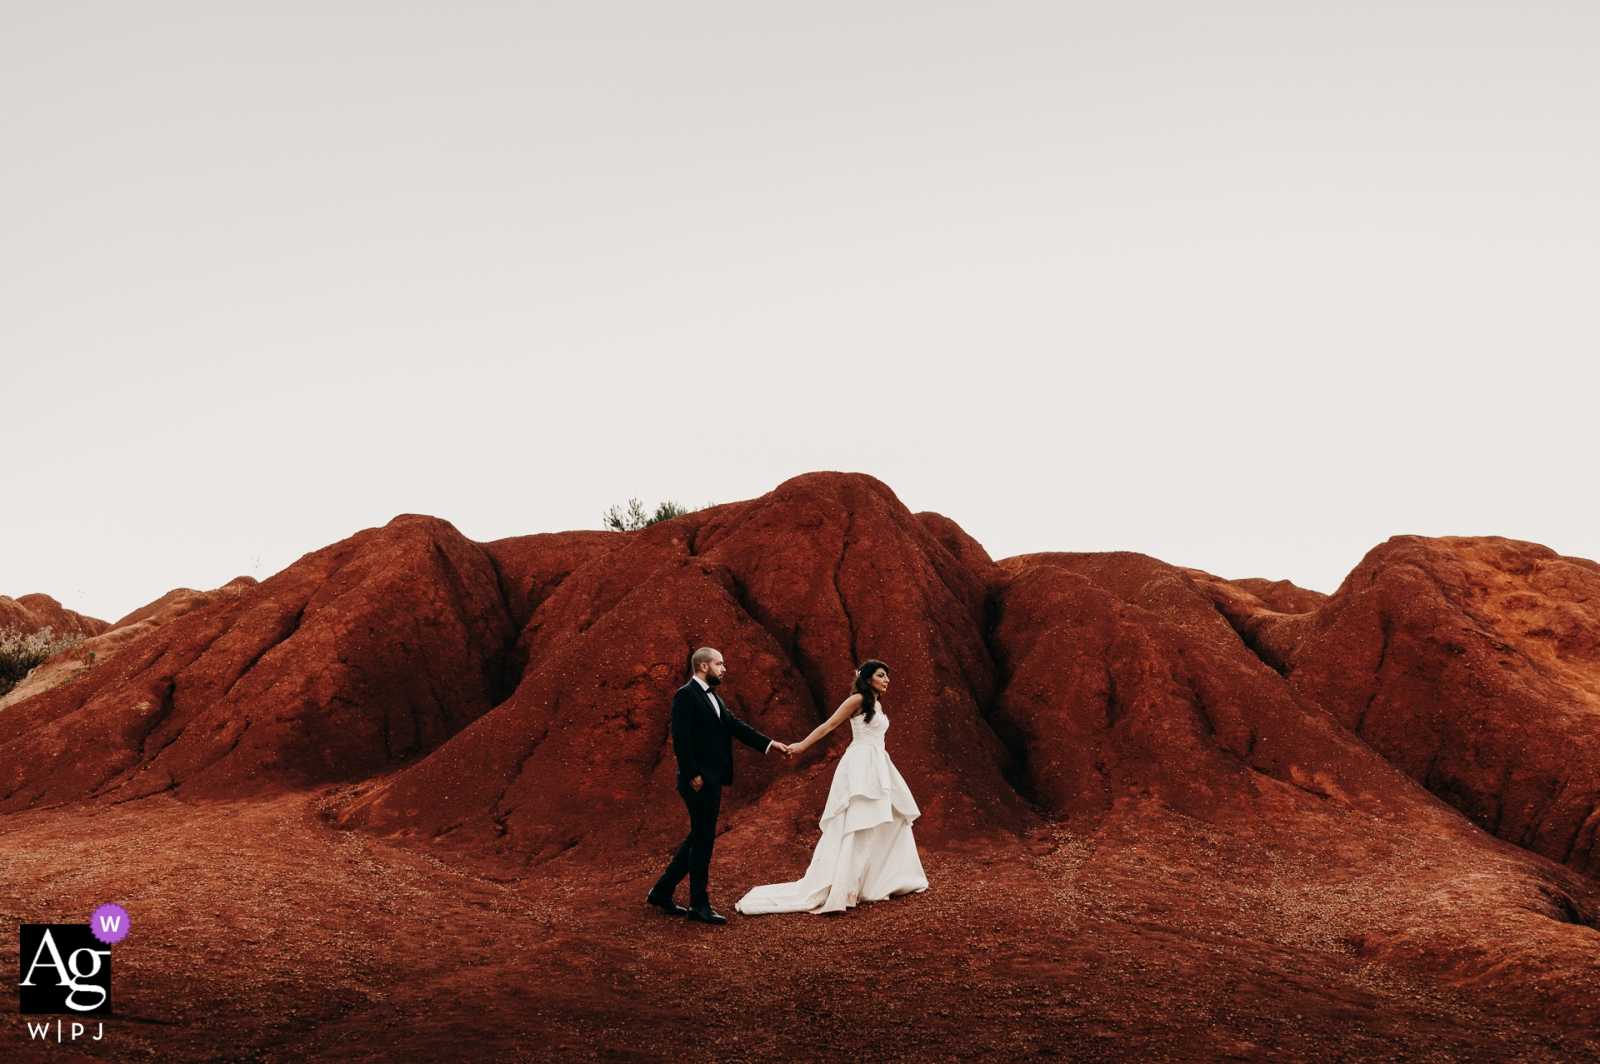 Apulia wedding photography - walking in a red clay quarry, in Puglia